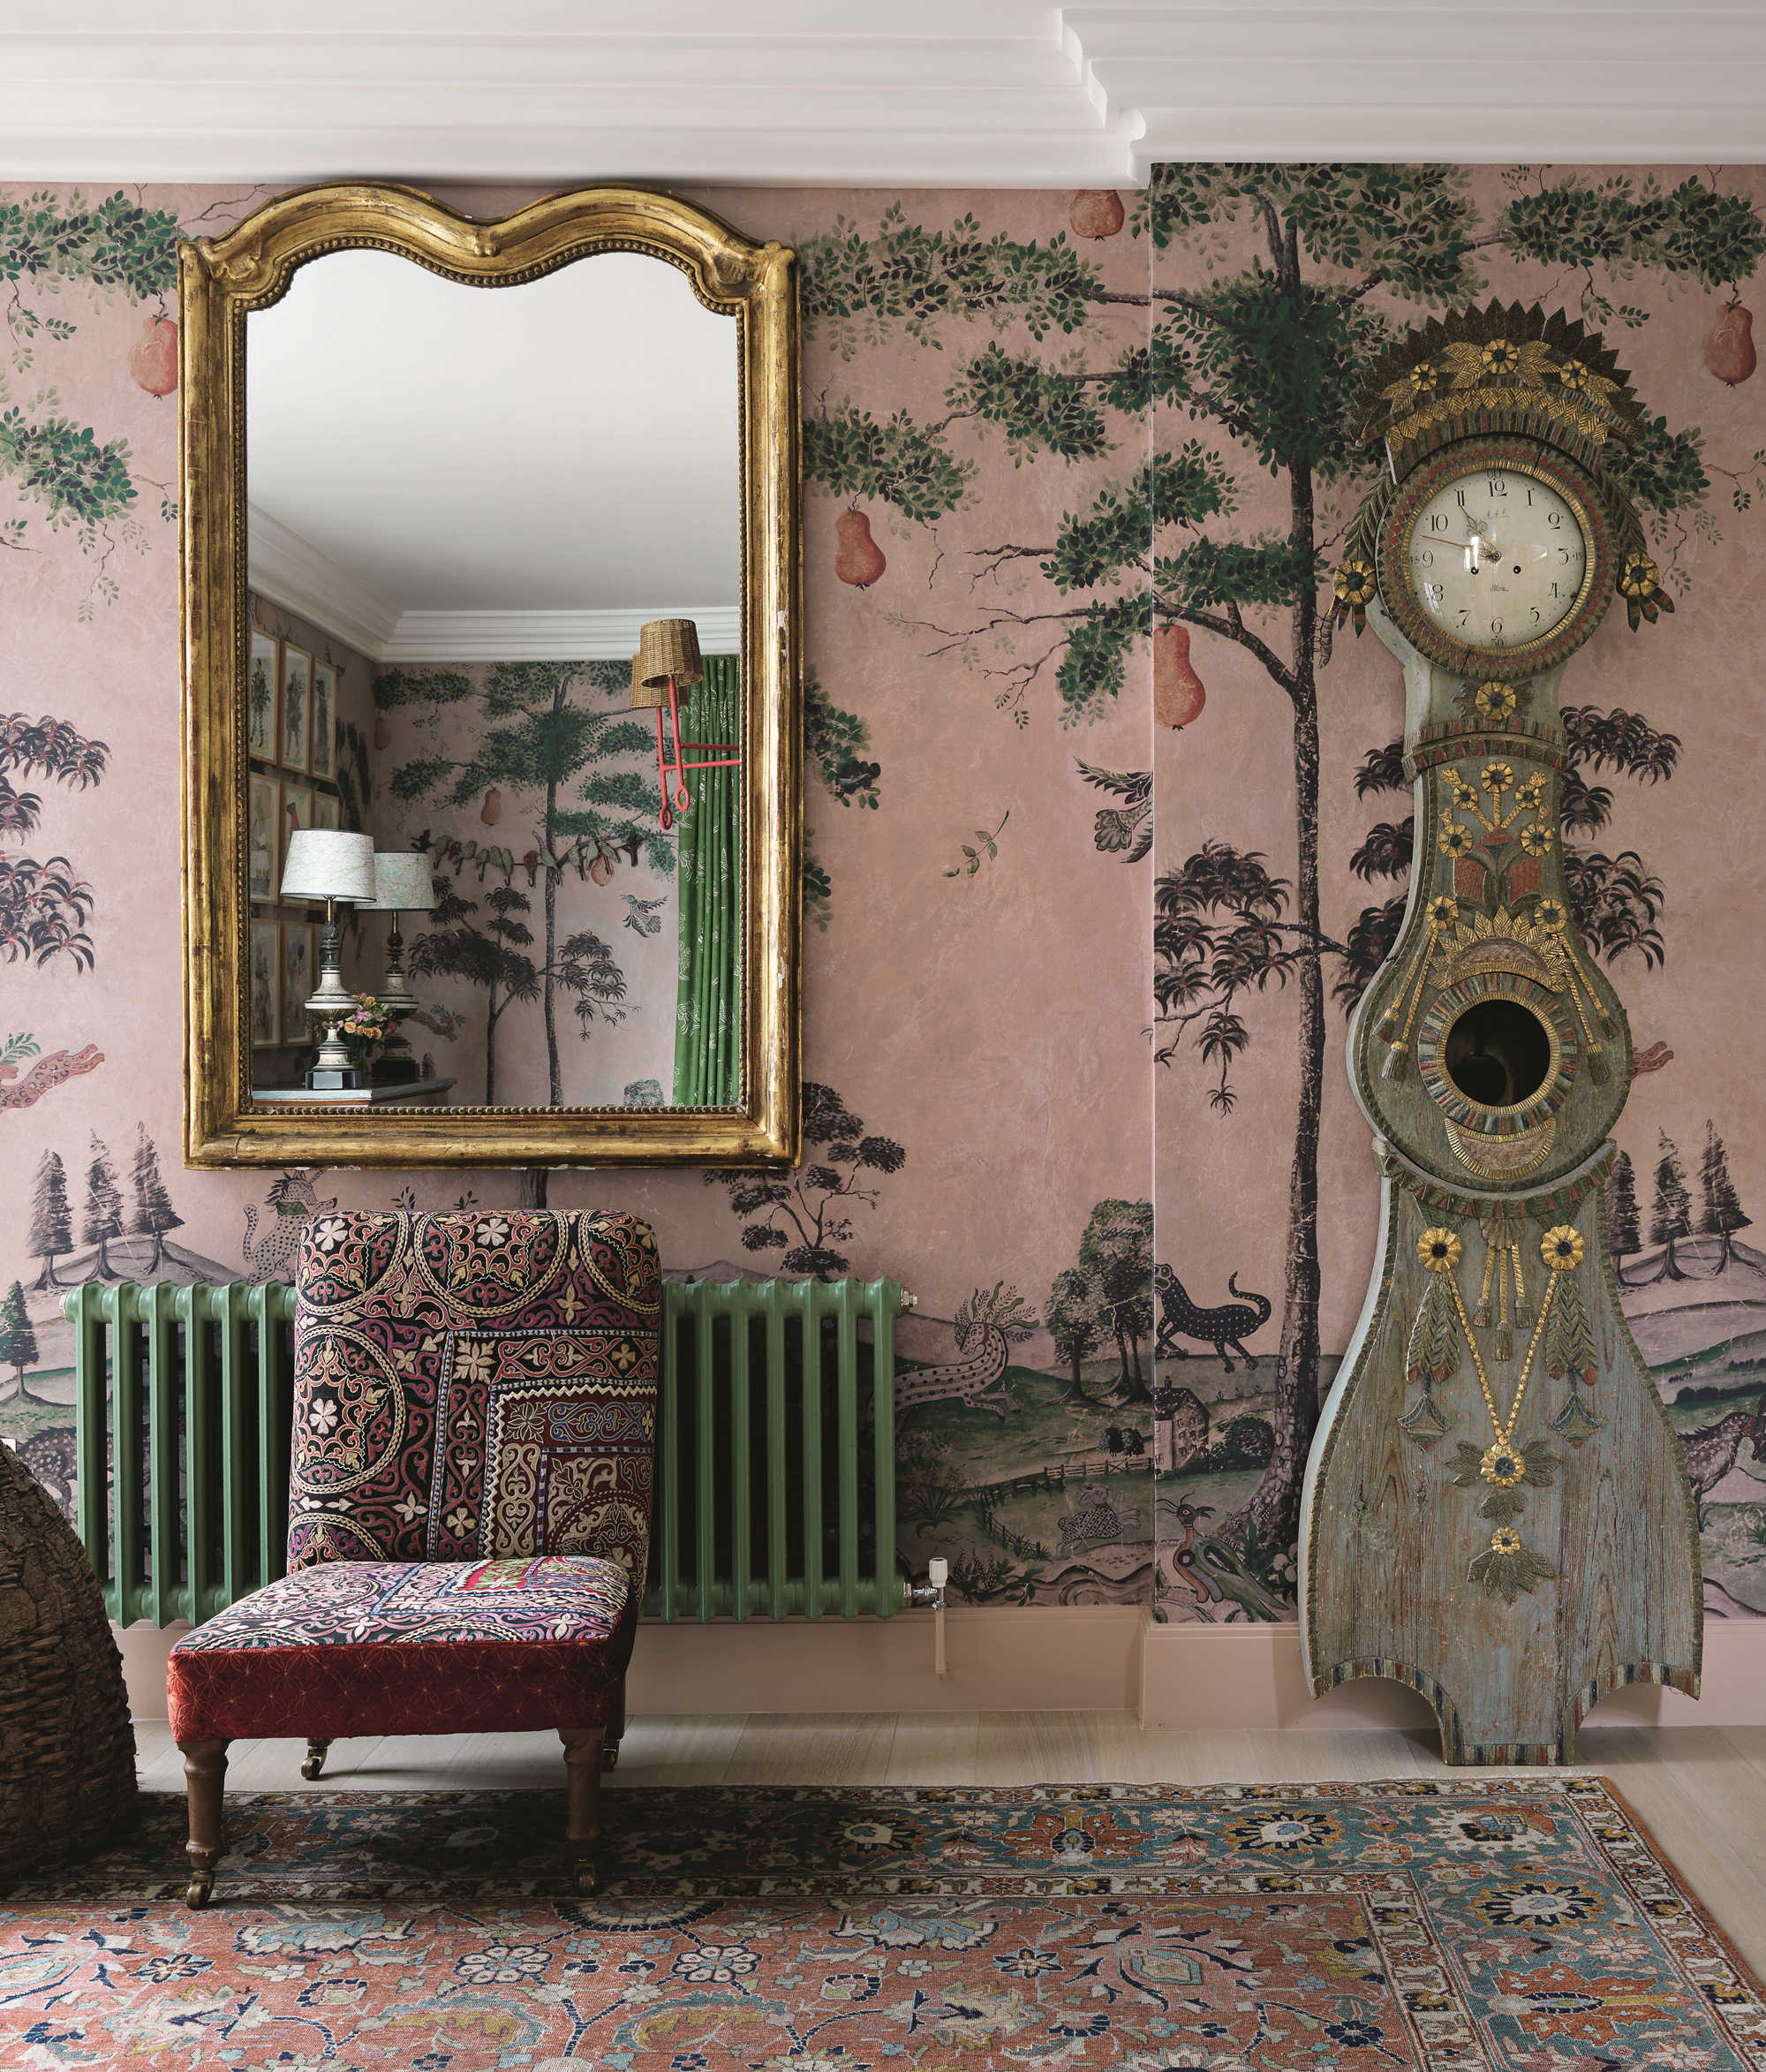 Kit Kemp: Hyde Park Gate, private residence, London, UK, 2020. Photo by Simon Brown, courtesy of Firmdale Hotels